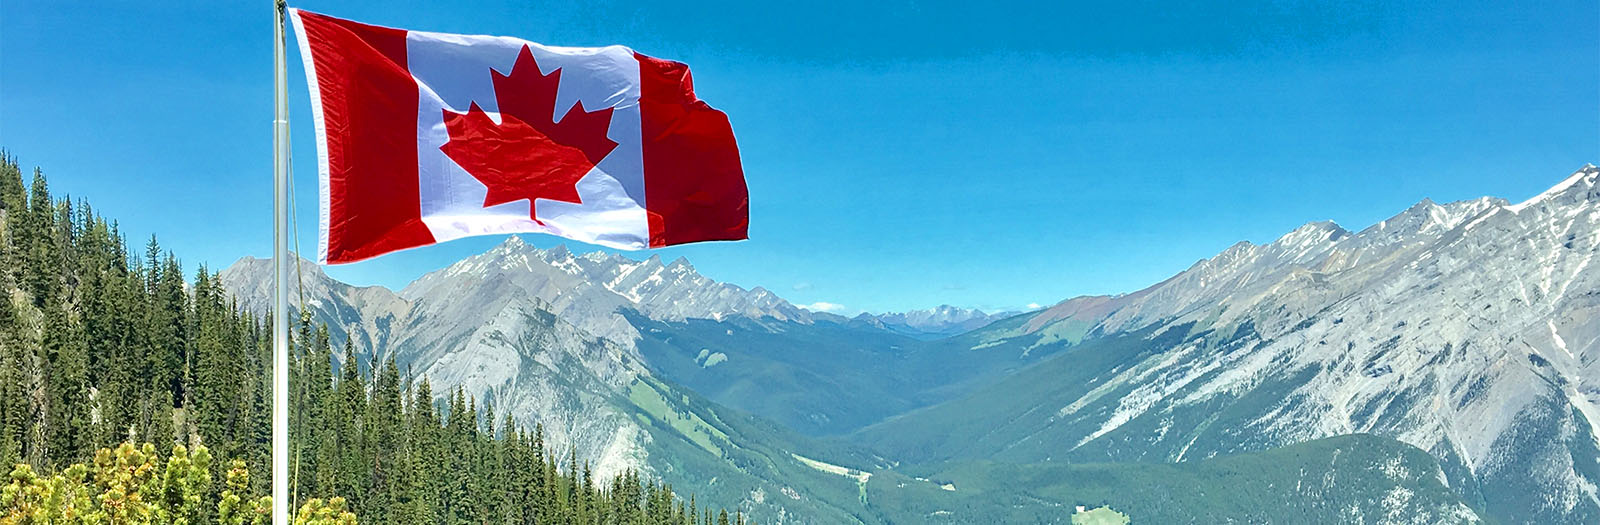 Canadian flag in the mountains